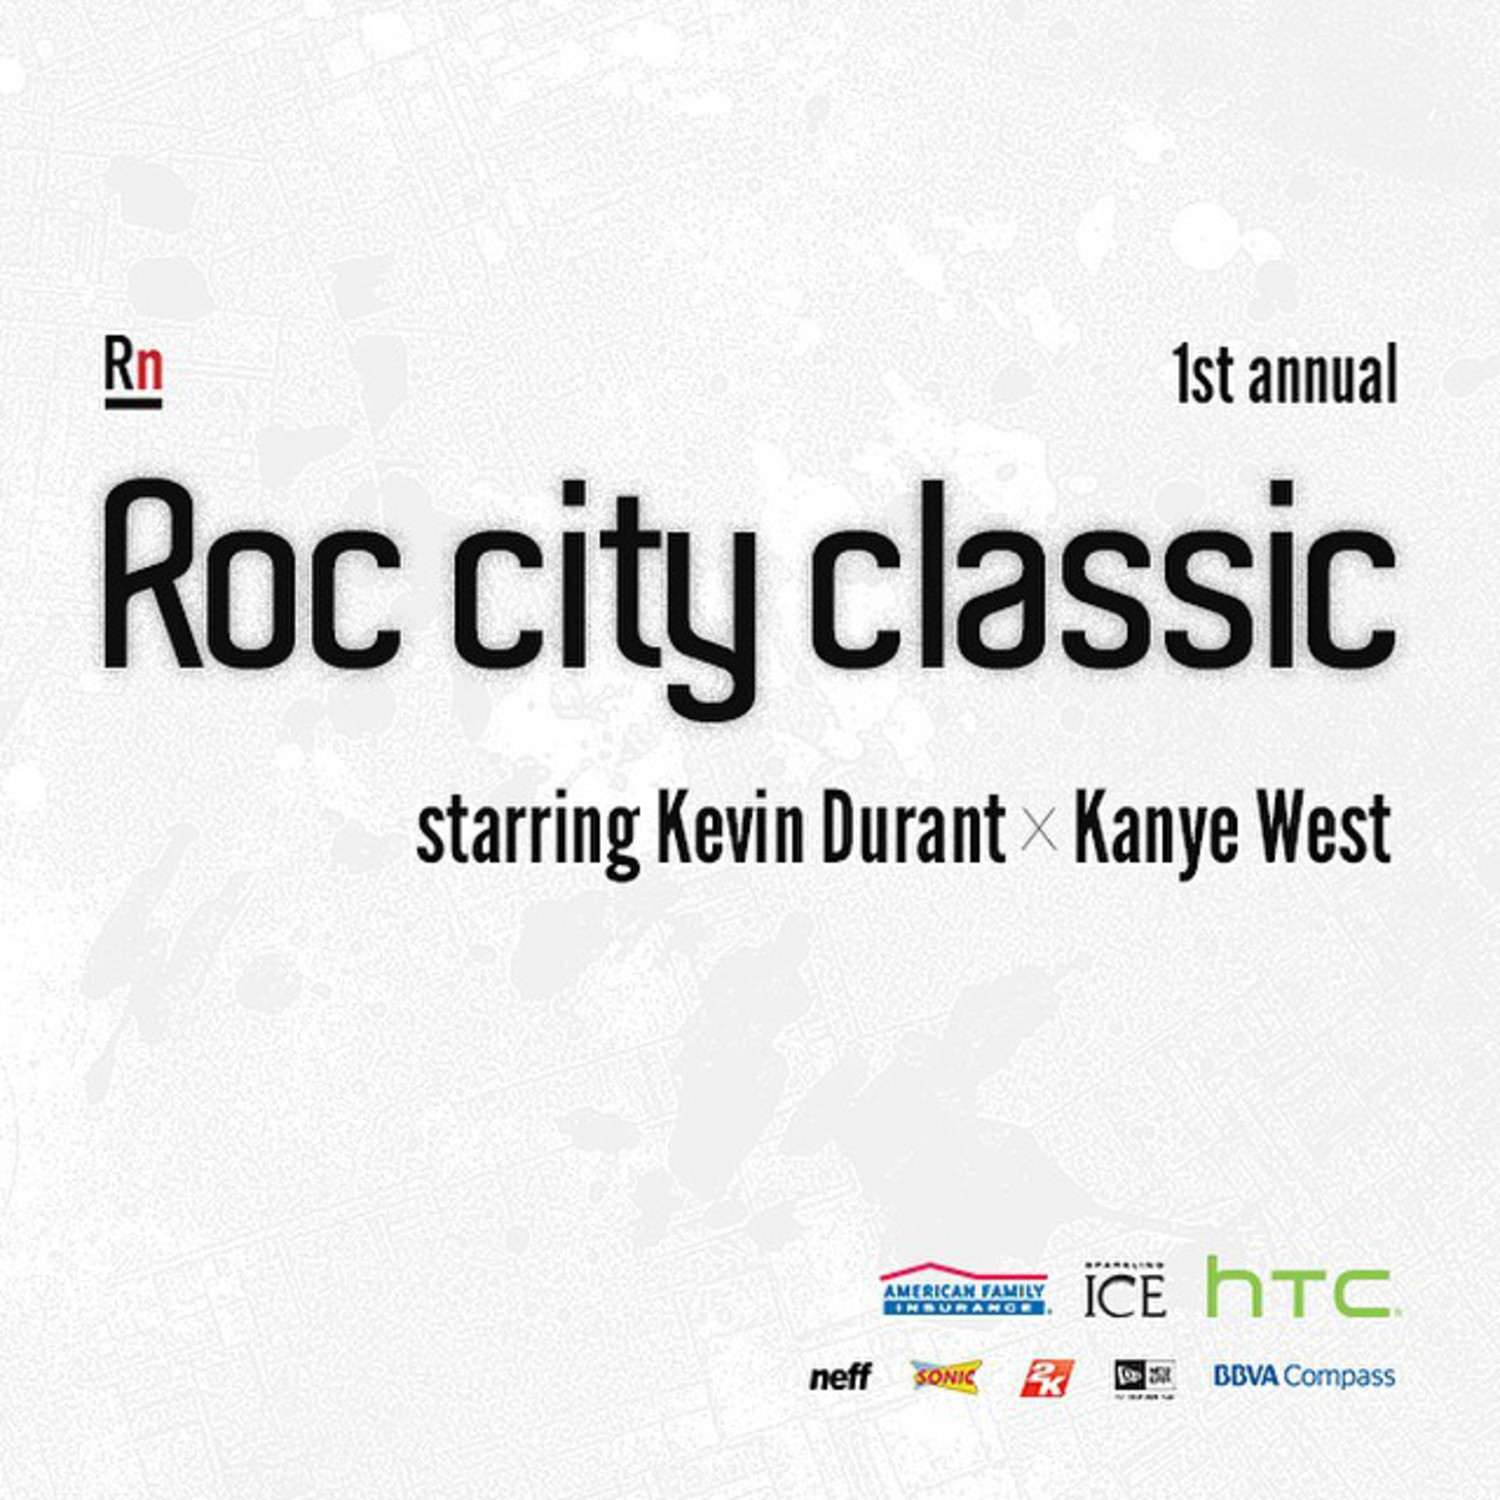 #Roccityclassic starring Kevin Durant @easymoneysniper x #KANYEWEST takes place in NYC on 2/12. Find out how to win tickets and more info at www.roccityclassic.com.